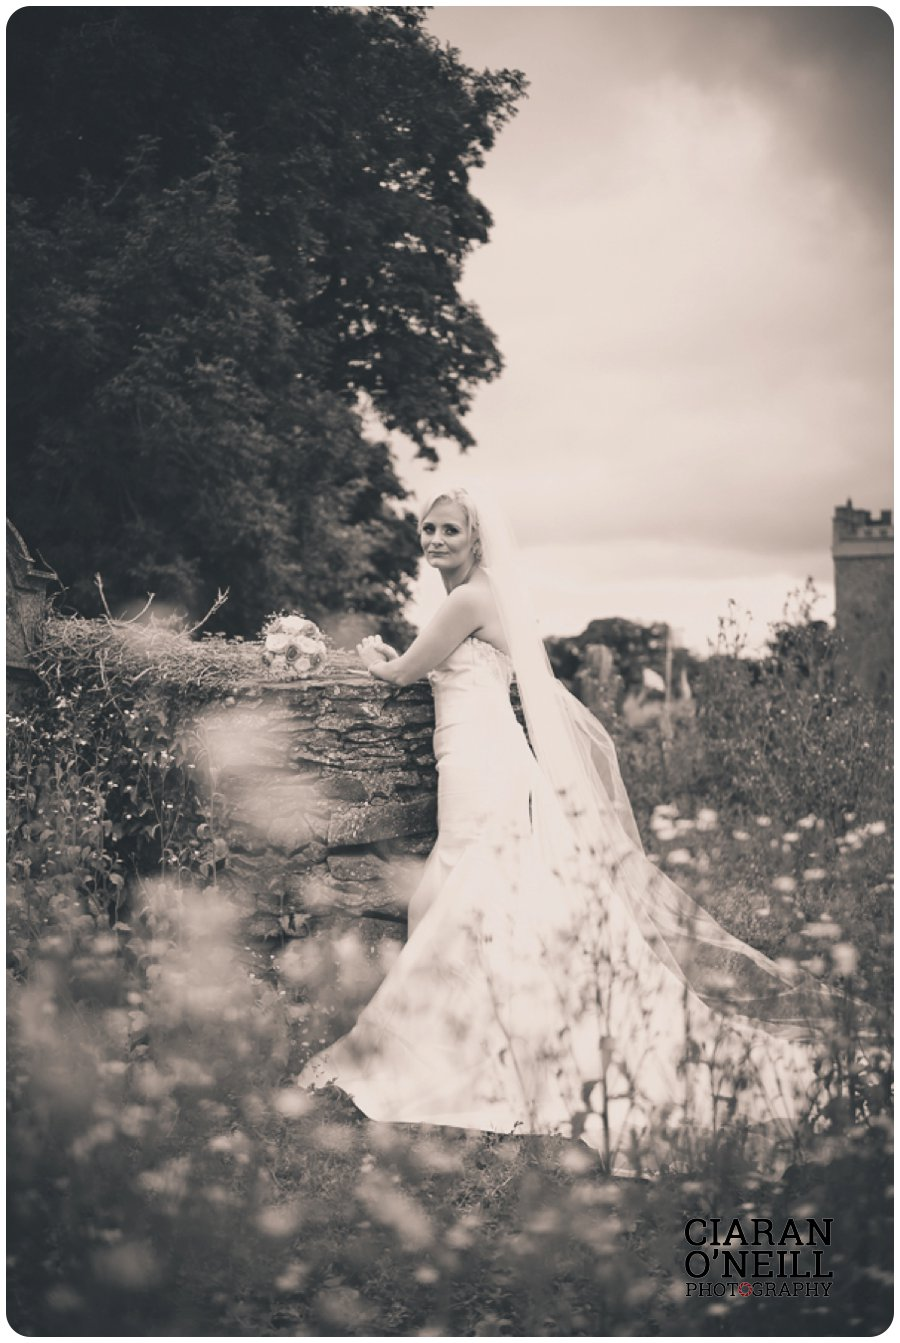 Clare & Mark's wedding at Darver Castle by Ciaran O'Neill Photography 16